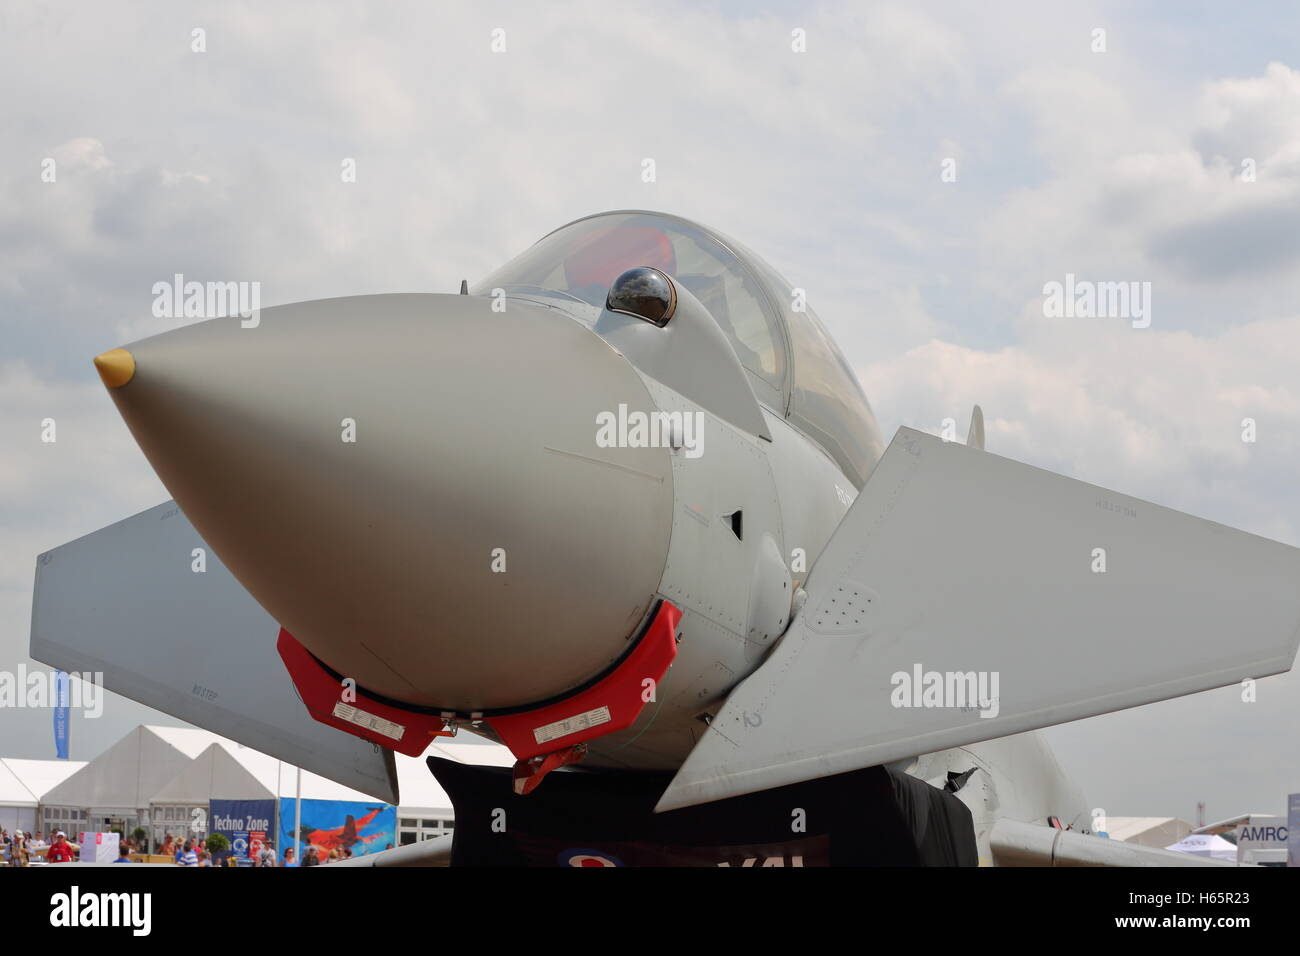 Eurofighter Typhoon at the RIAT 2014 in Fairford, UK - Stock Image